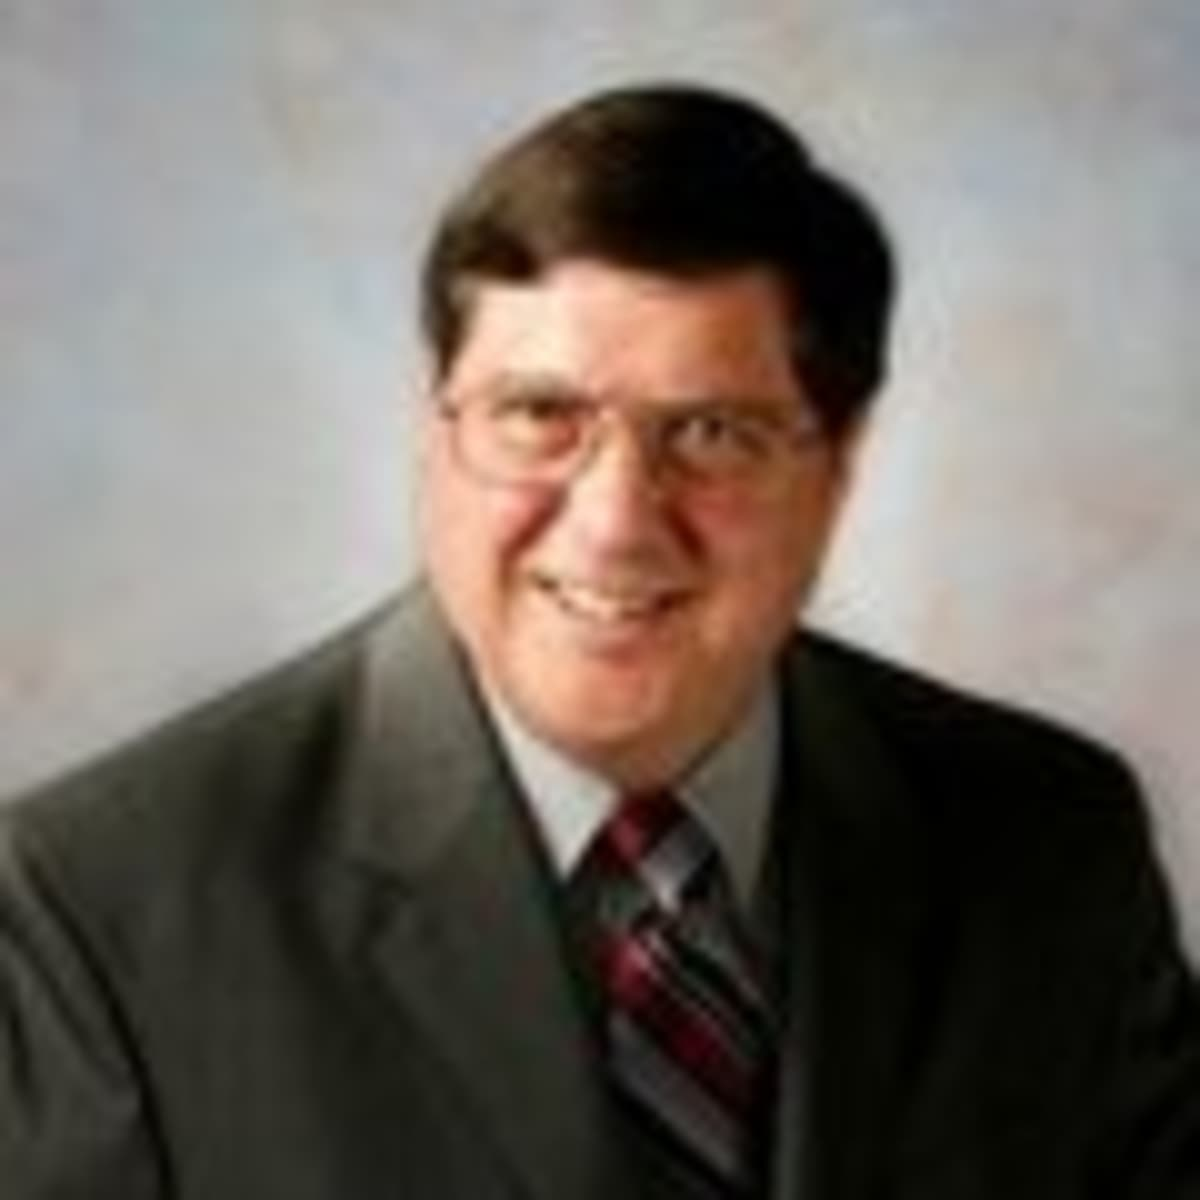 Dr Gregory Leitheiser Md Cumberland Wi Family Doctor